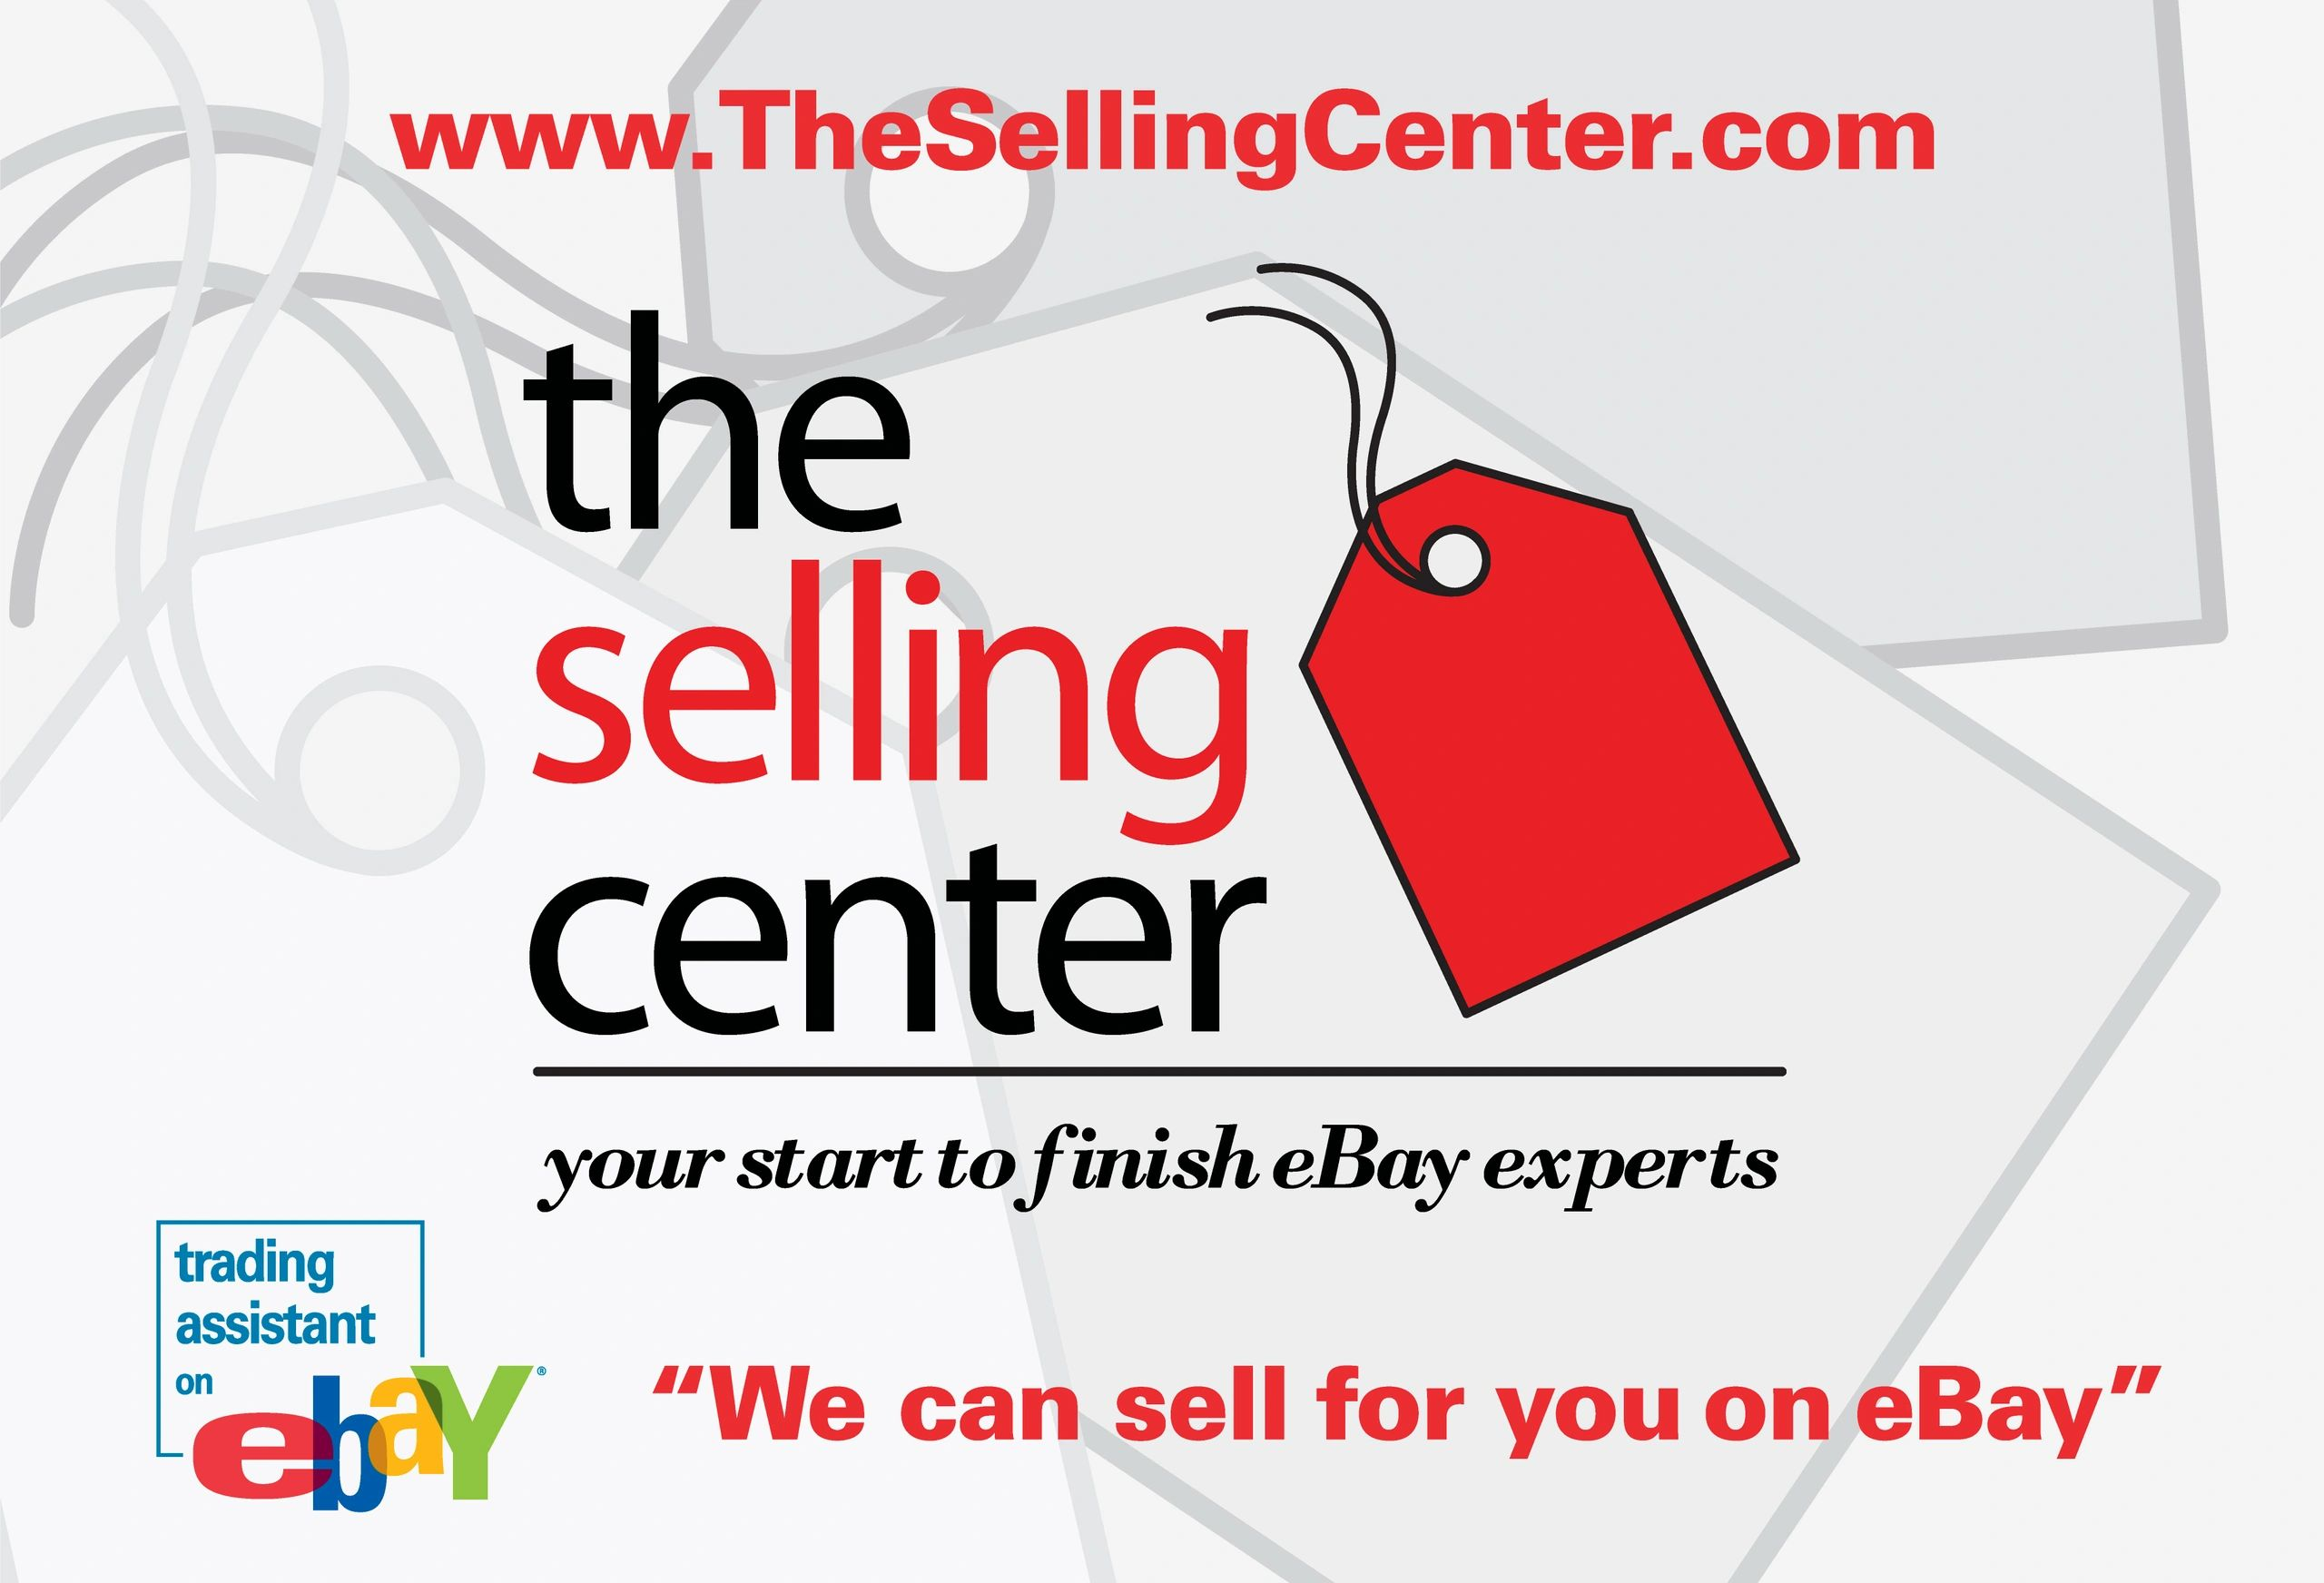 Ebay Consignment Service Business The Selling Center